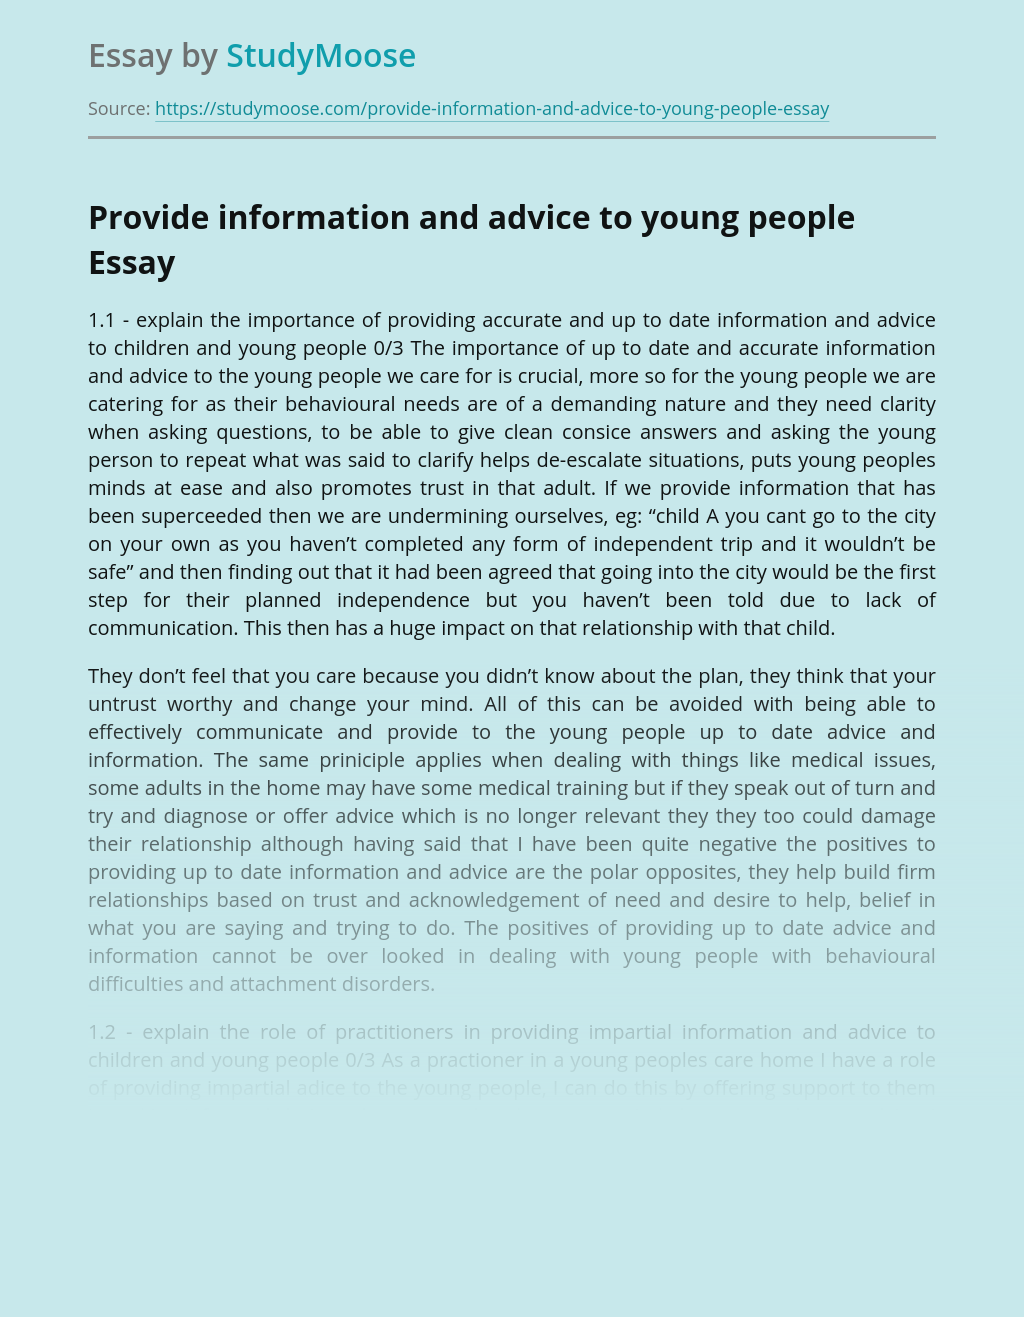 Provide information and advice to young people